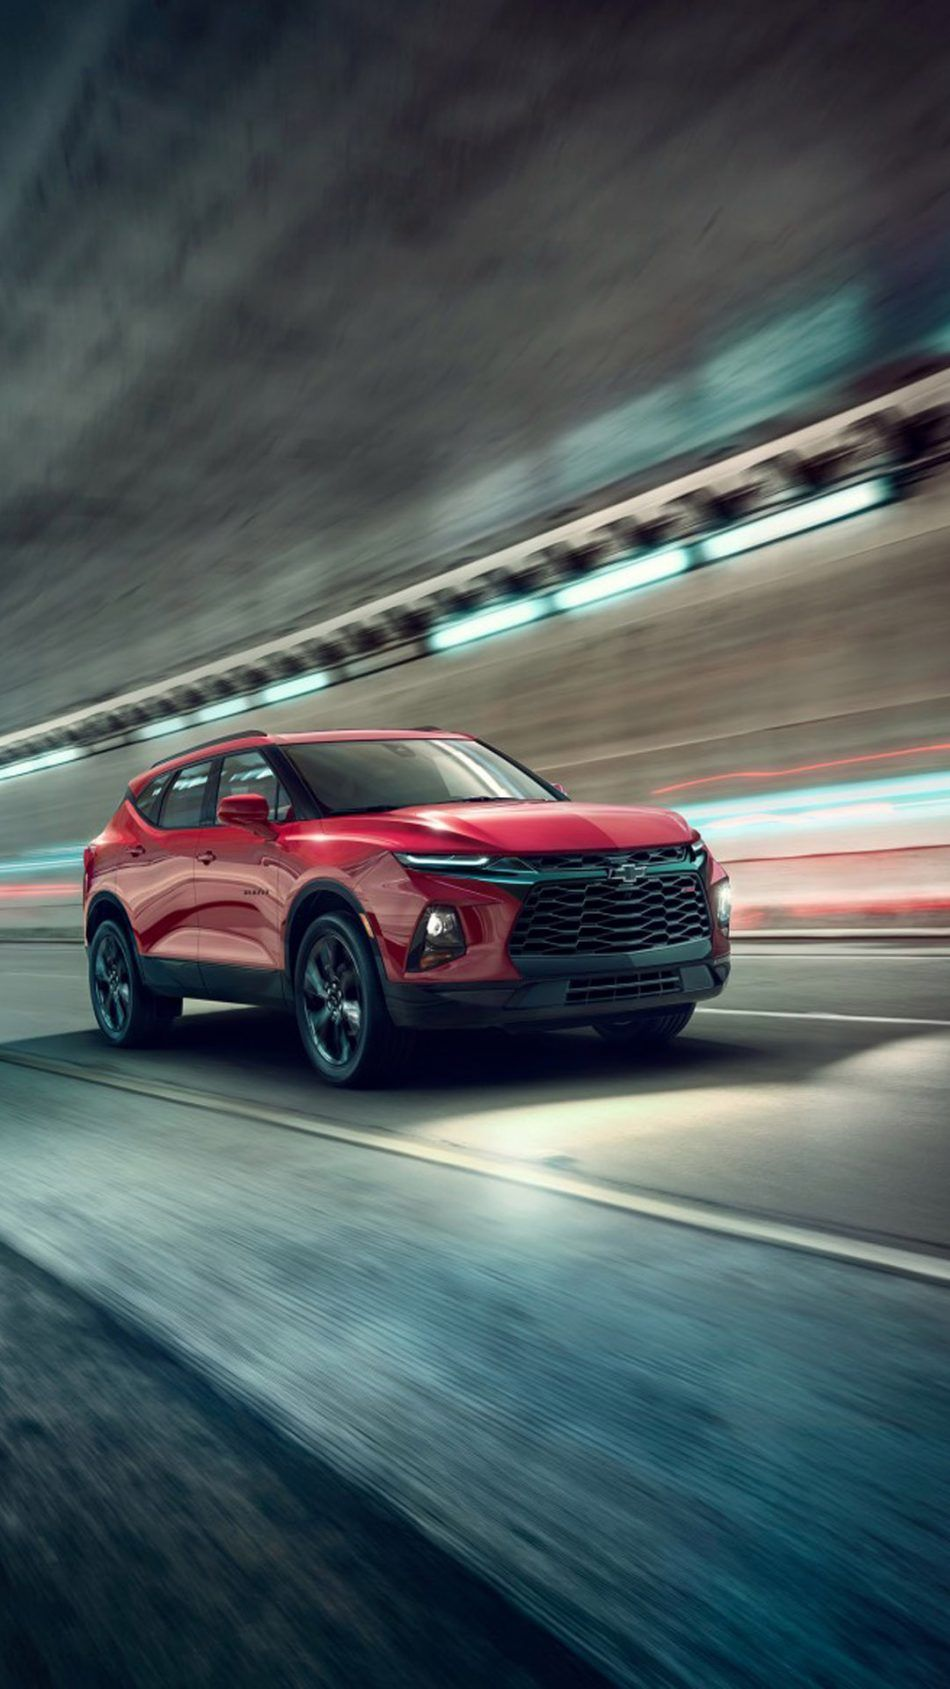 Red Chevrolet Blazer Rs Suv Chevrolet Blazer Suv Chevrolet